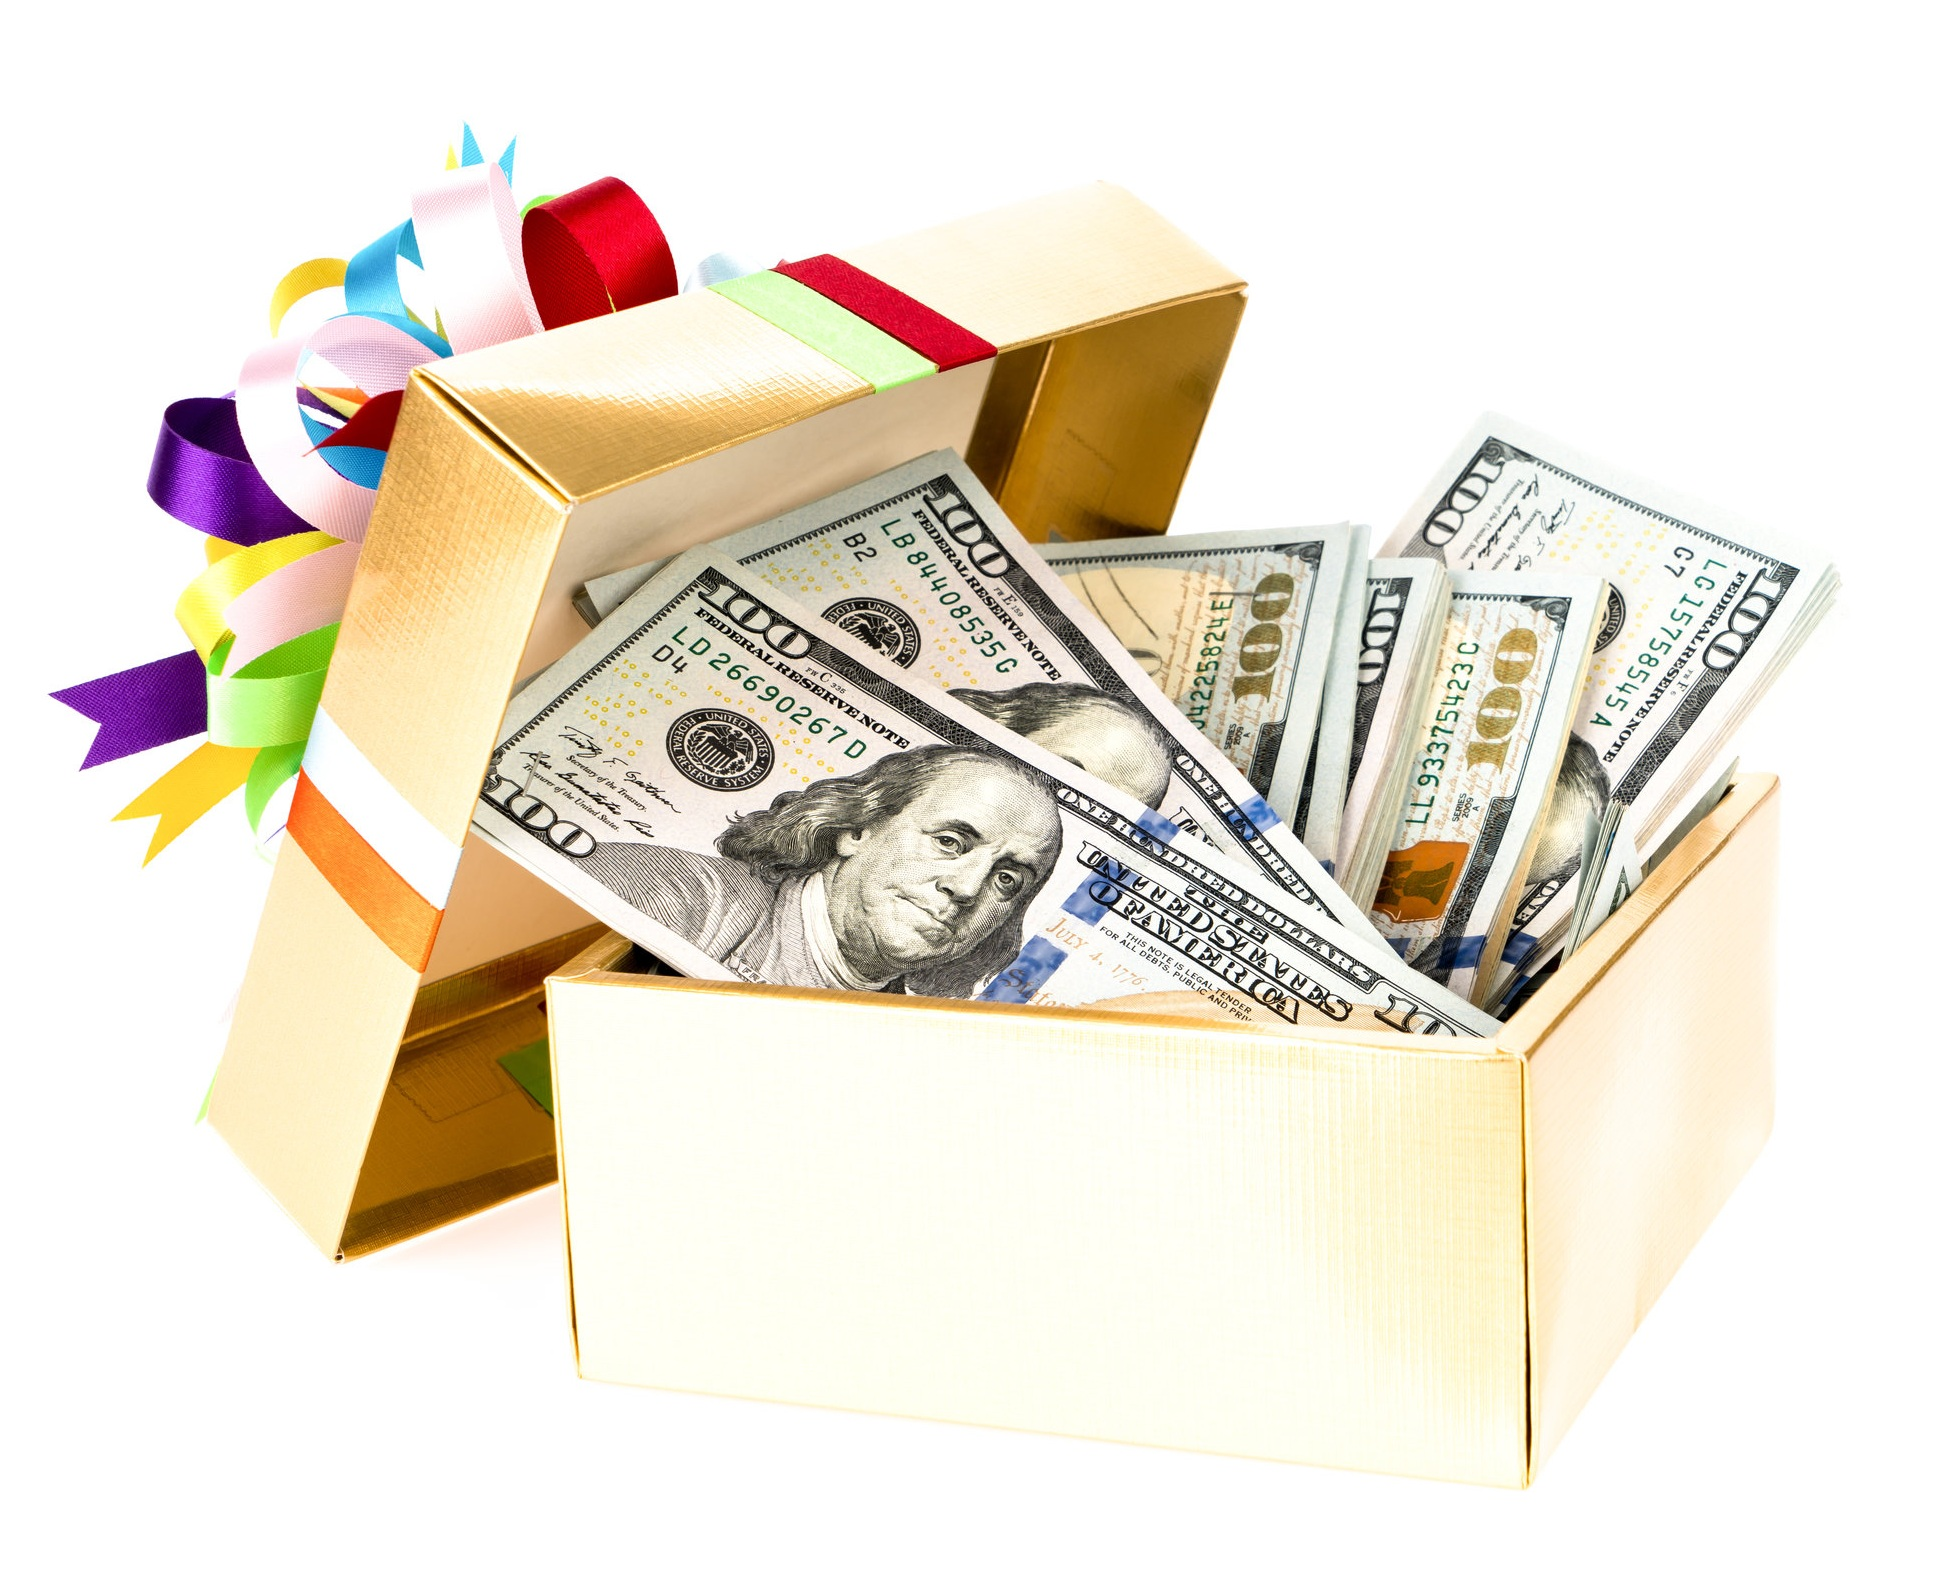 MoneyGift_Created+by+Jannoon028+-+Freepik.com.jpg